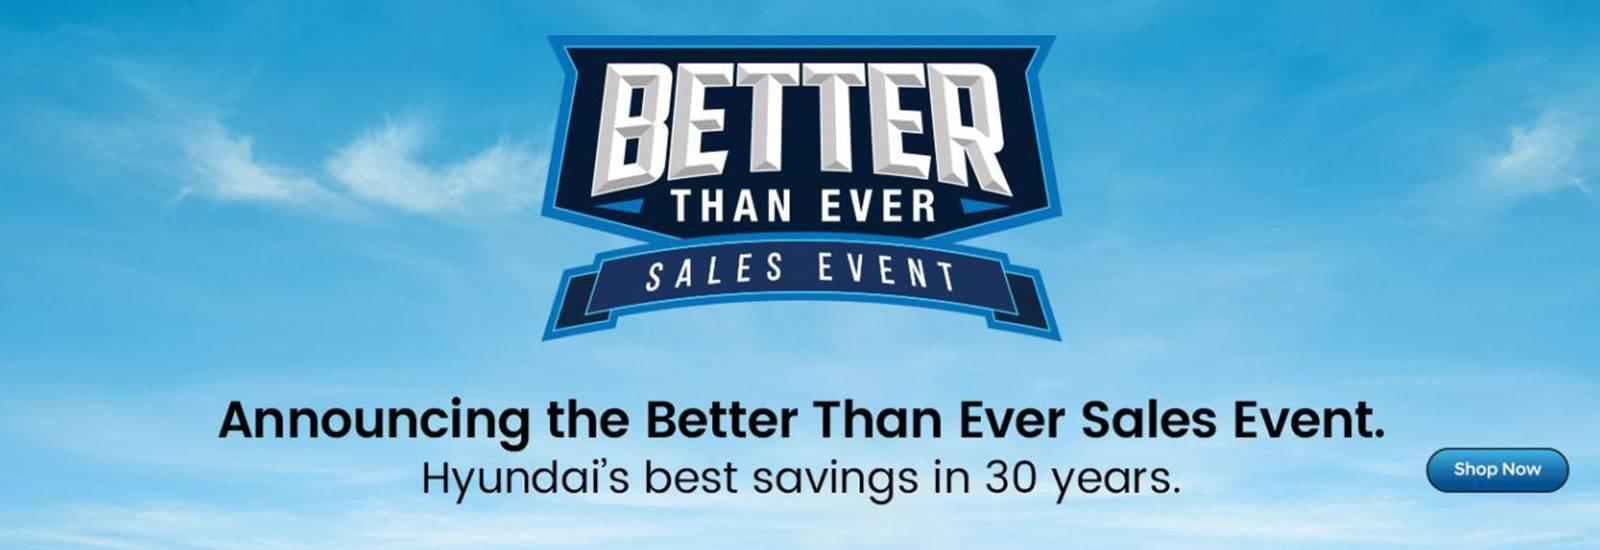 Hyundai Better Than Ever Sales Event